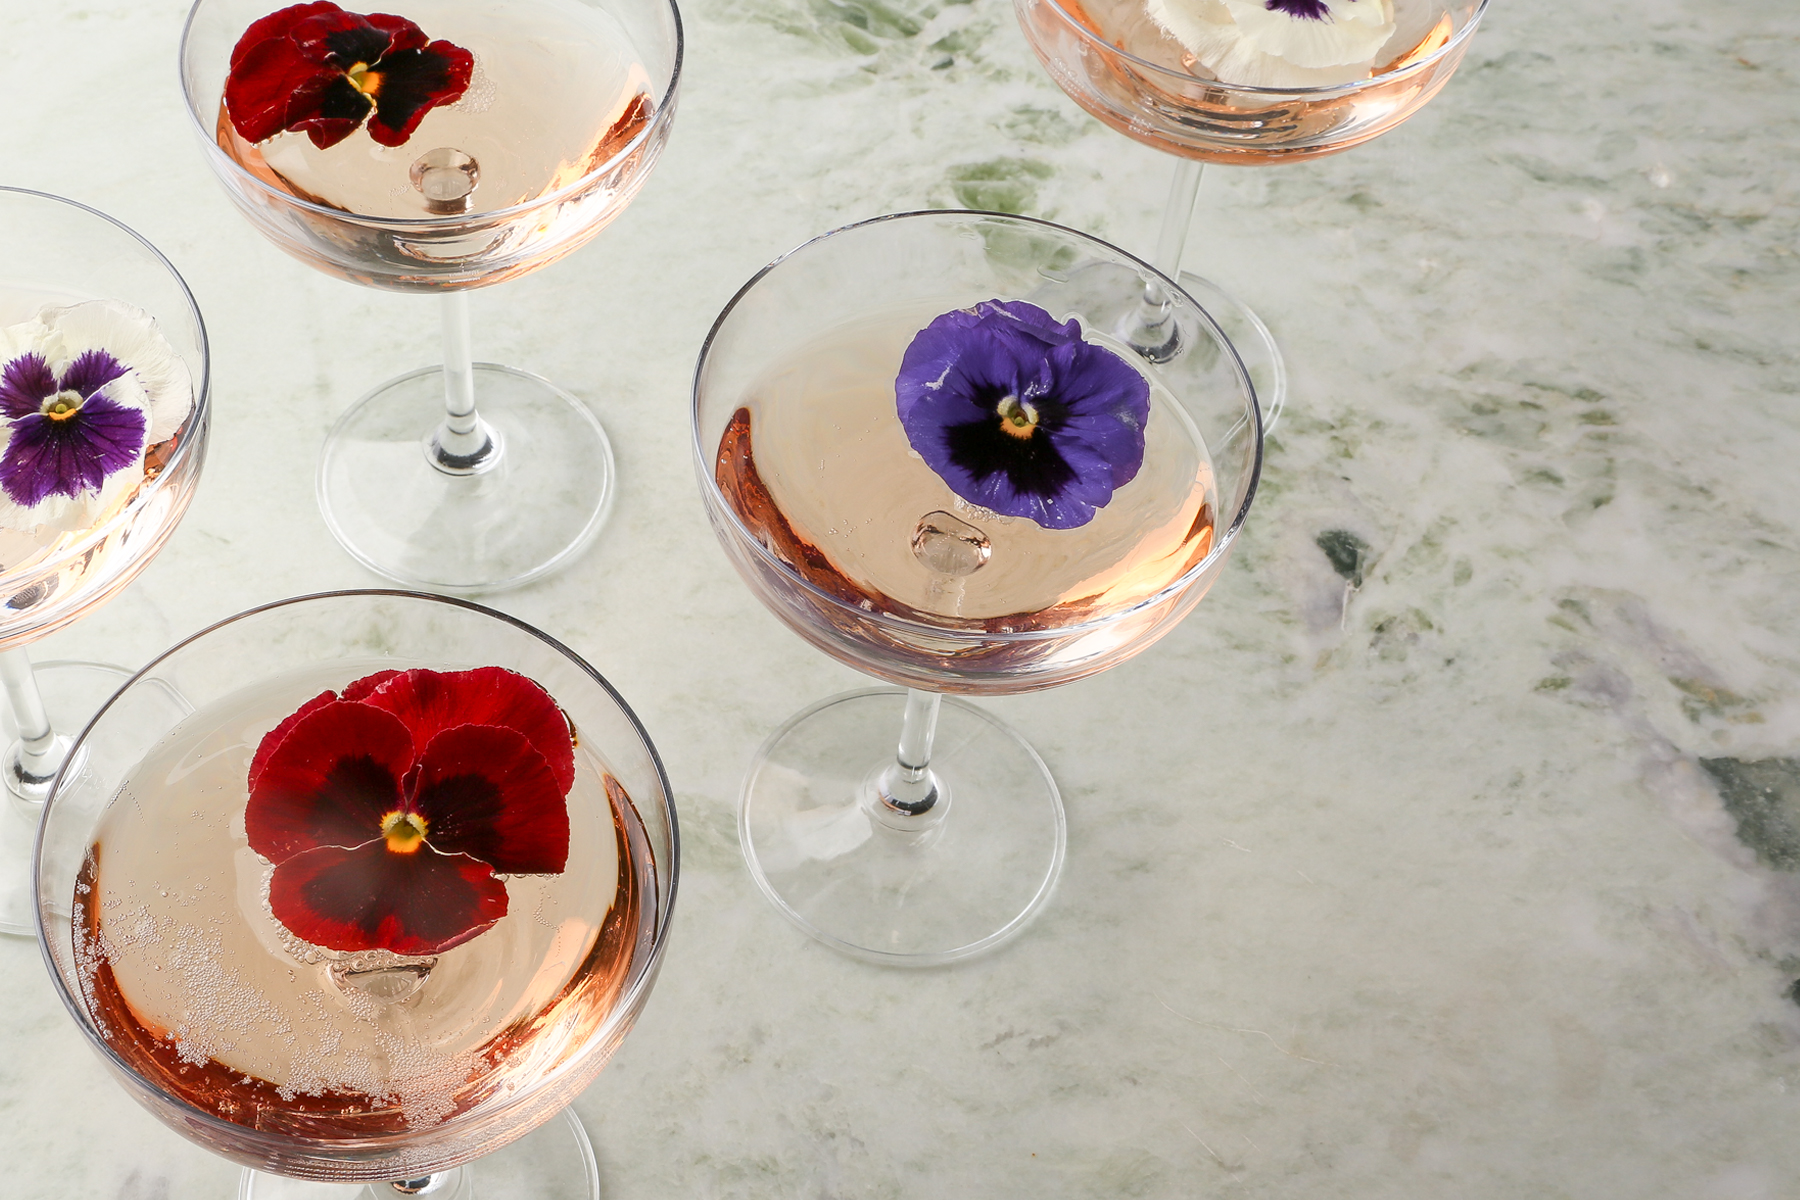 Edible flower cocktail from Paperless Post